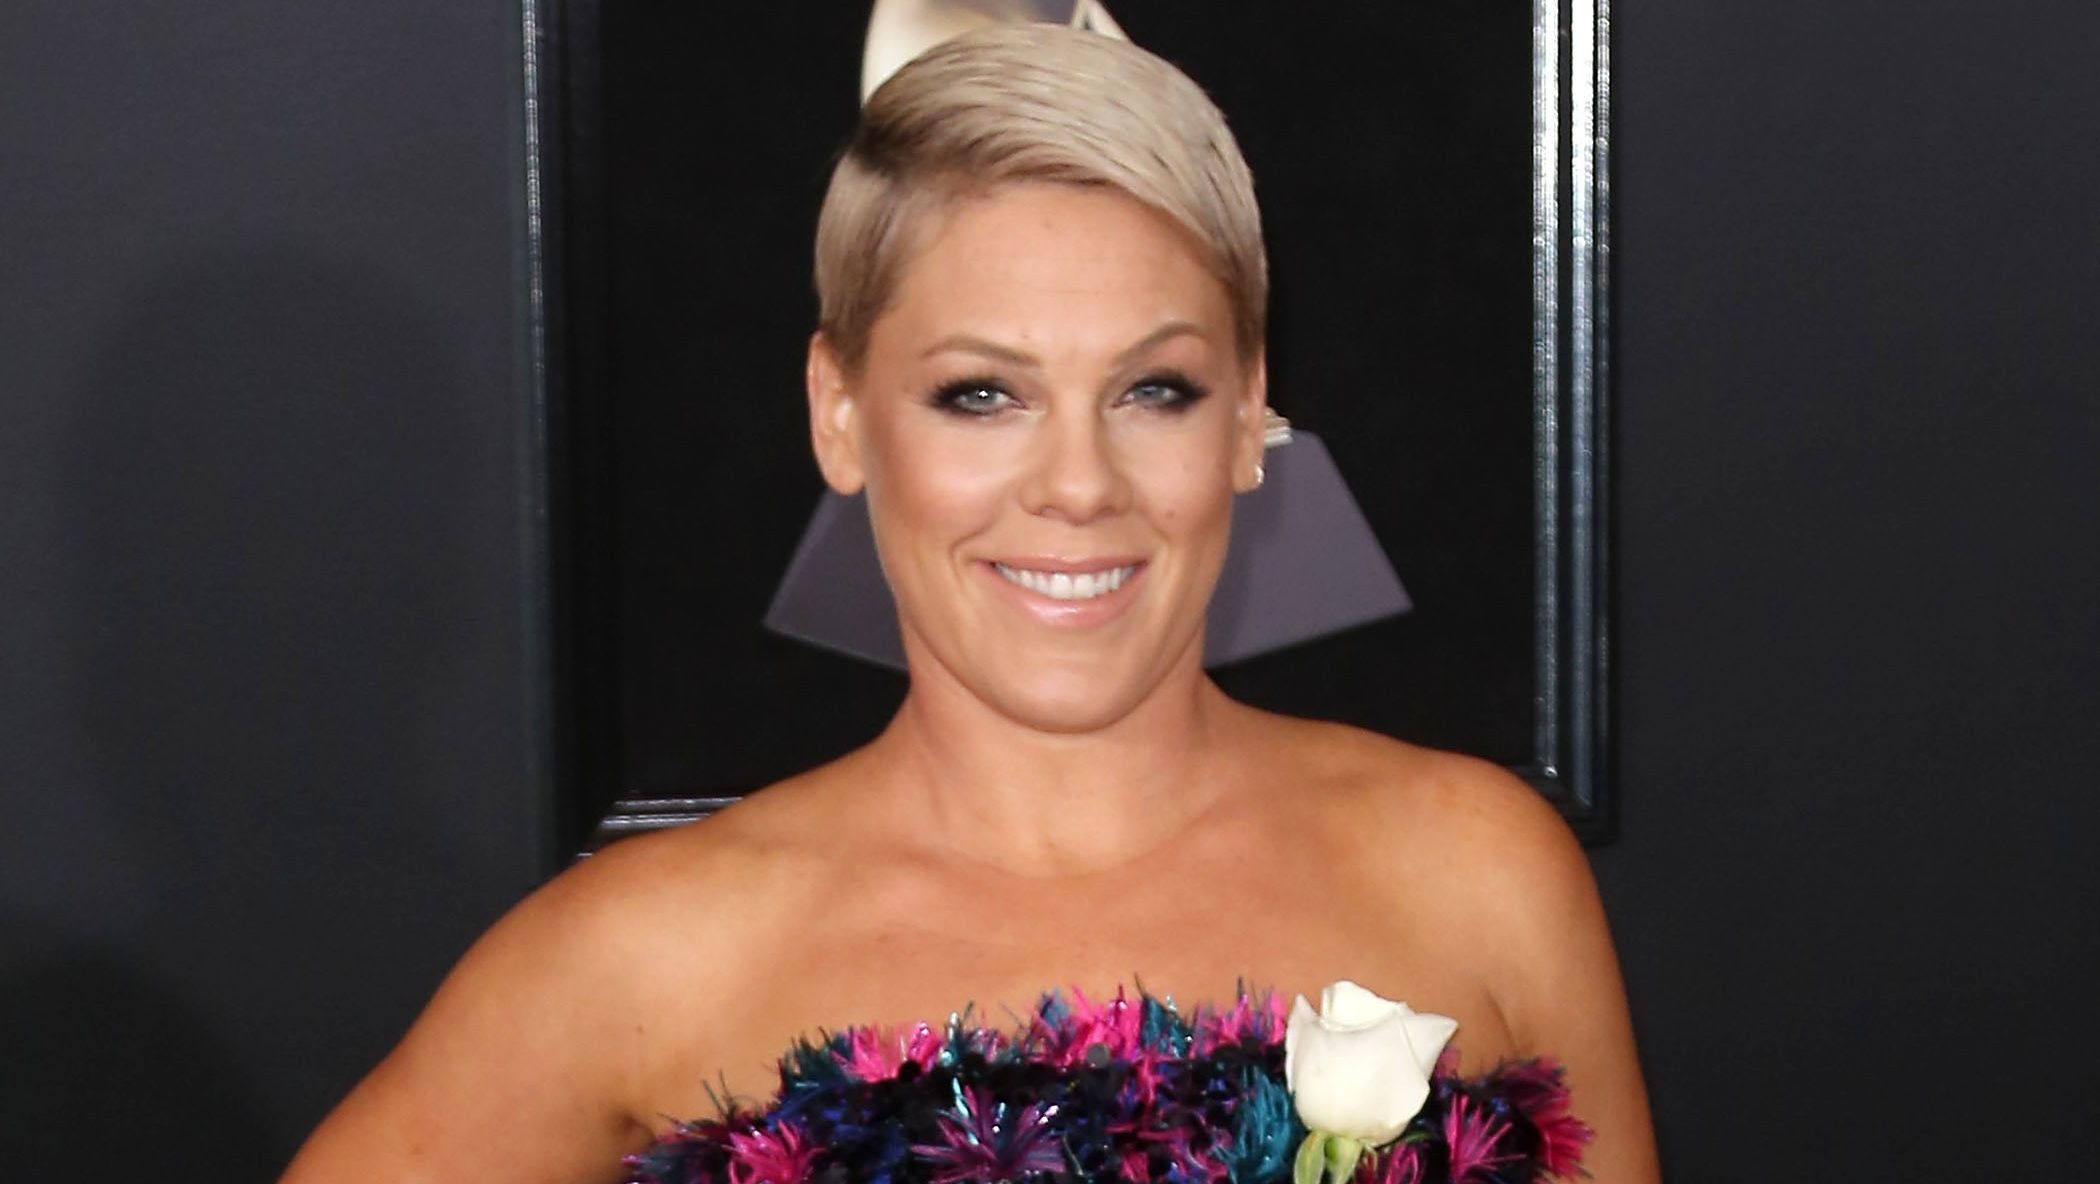 P!nk hits back in angry message as she's accused of 'cancelling her tour to go on holiday'